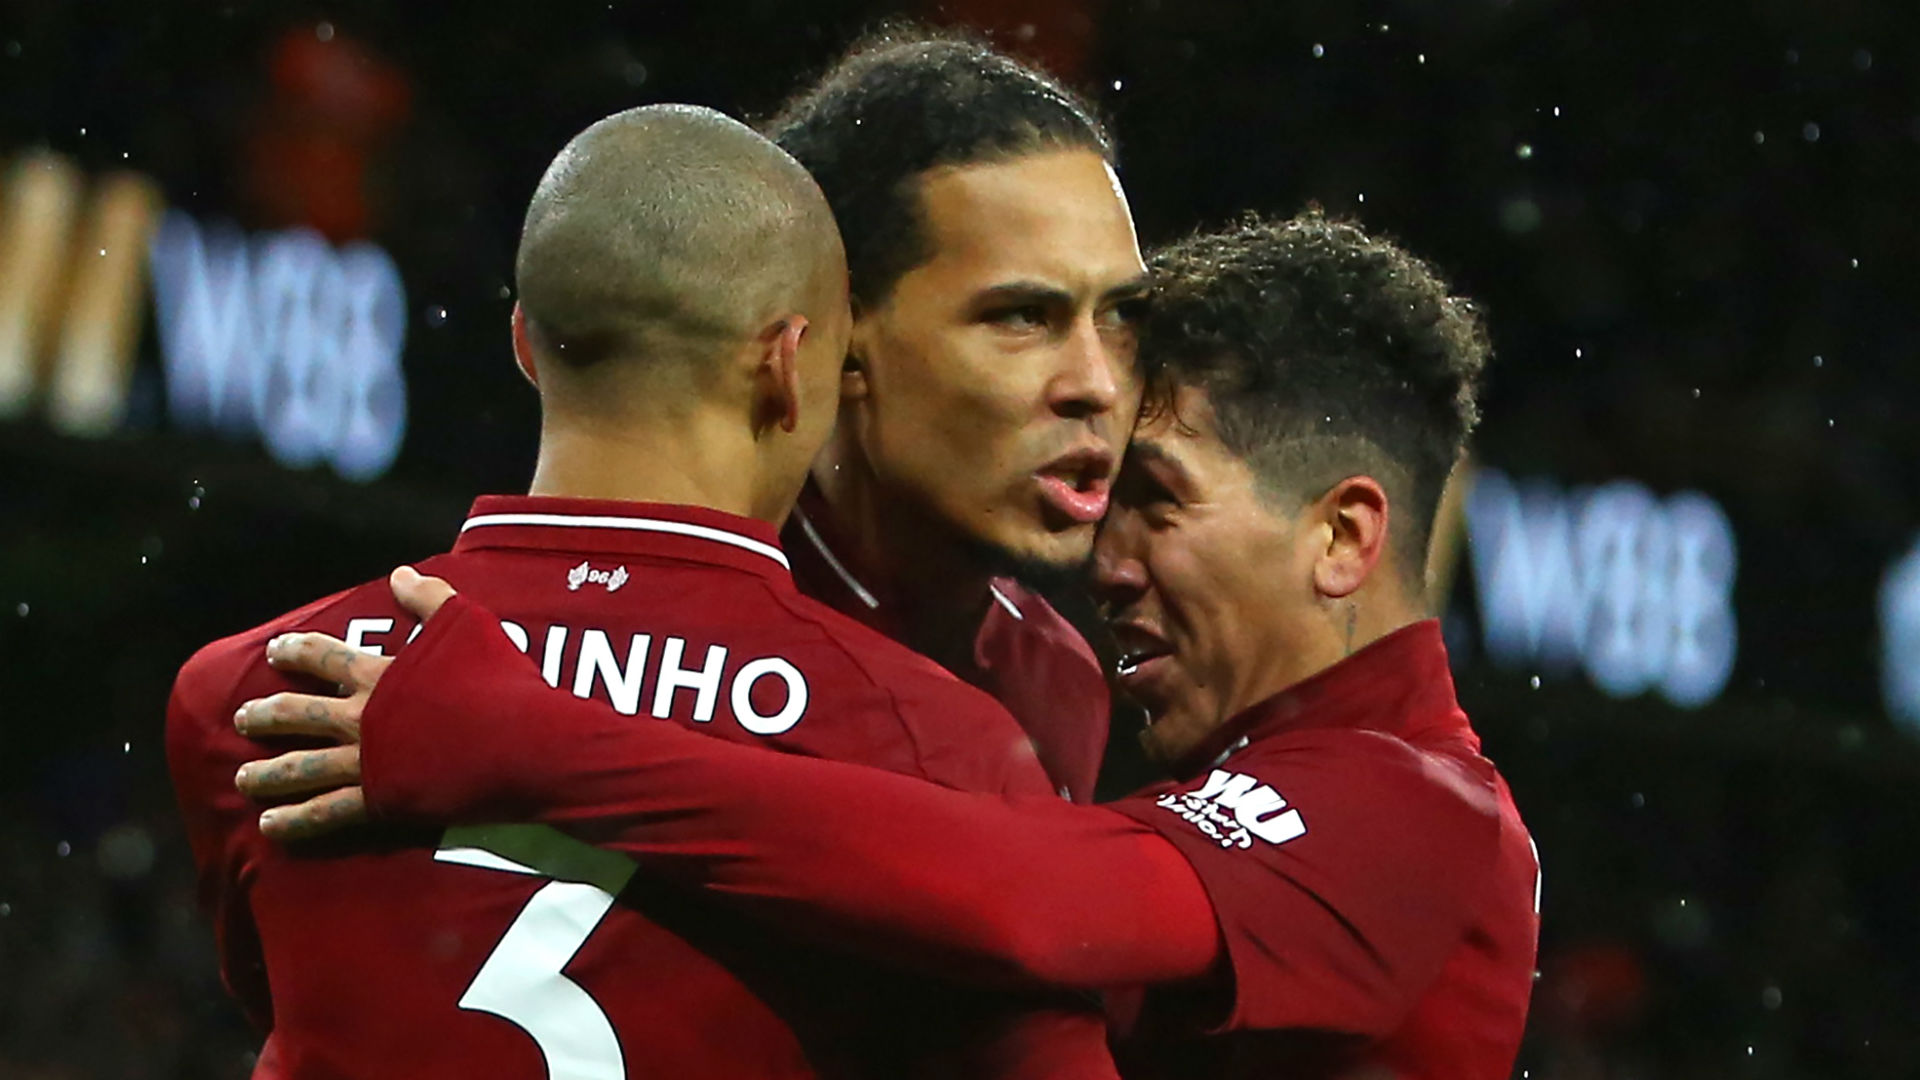 Van Dijk chooses the best ... and no sign of Messi and Cristiano